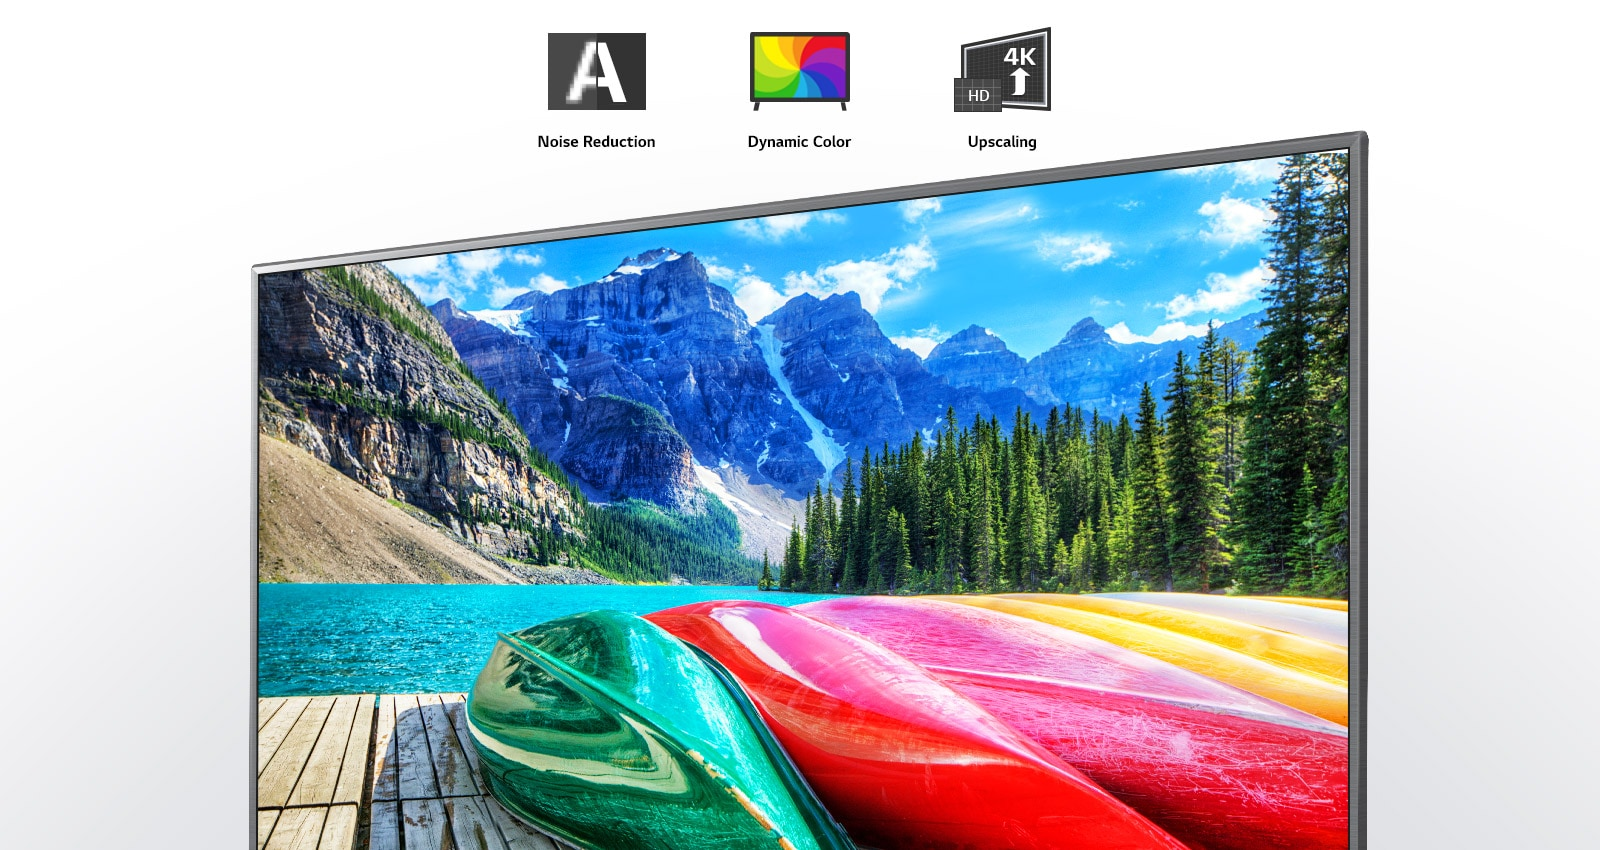 Noise reduction, dynamic colour, and upscaling icons and a TV screen showing  a scenic shot of mountains, forest, and a lake.